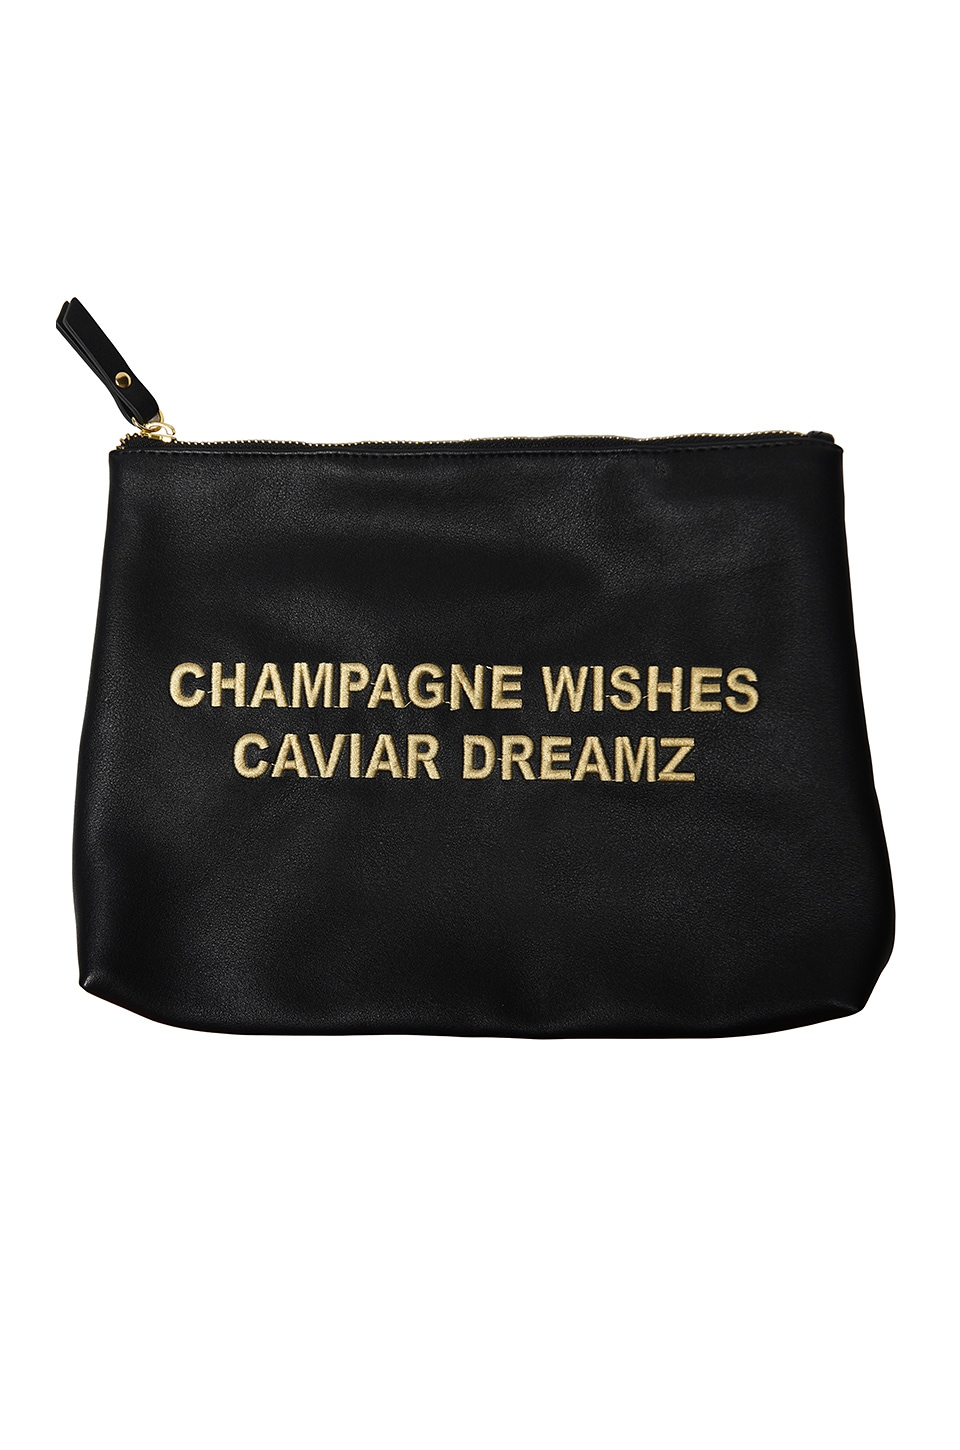 Champagne Wishes Caviar Dreamz Bag